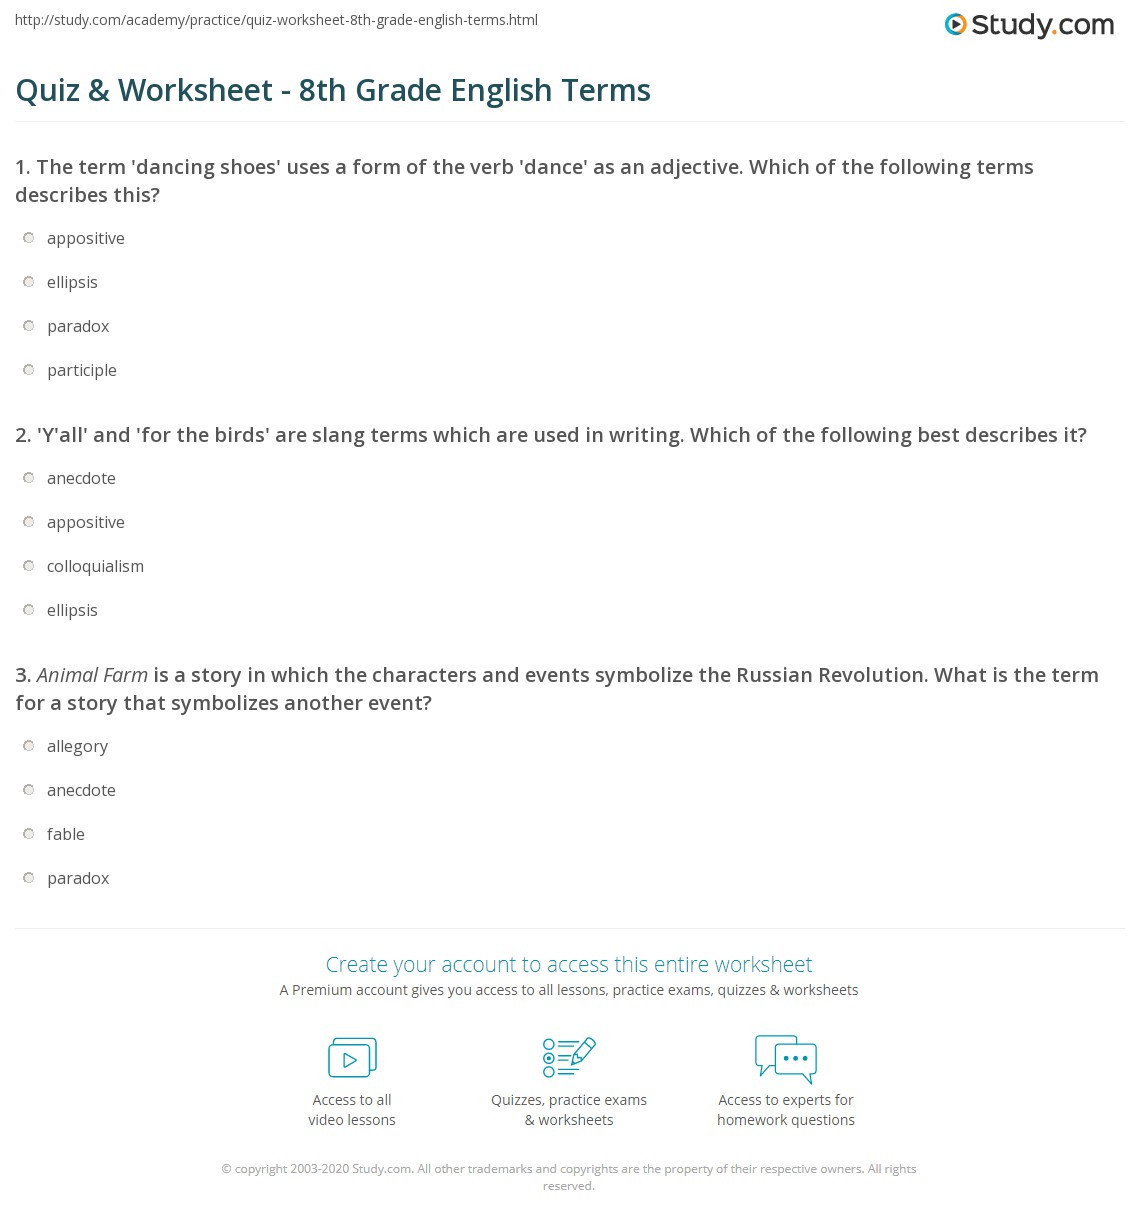 English Worksheets for 8th Grade Quiz Worksheet 8th Grade English Terms Study Worksheets Can